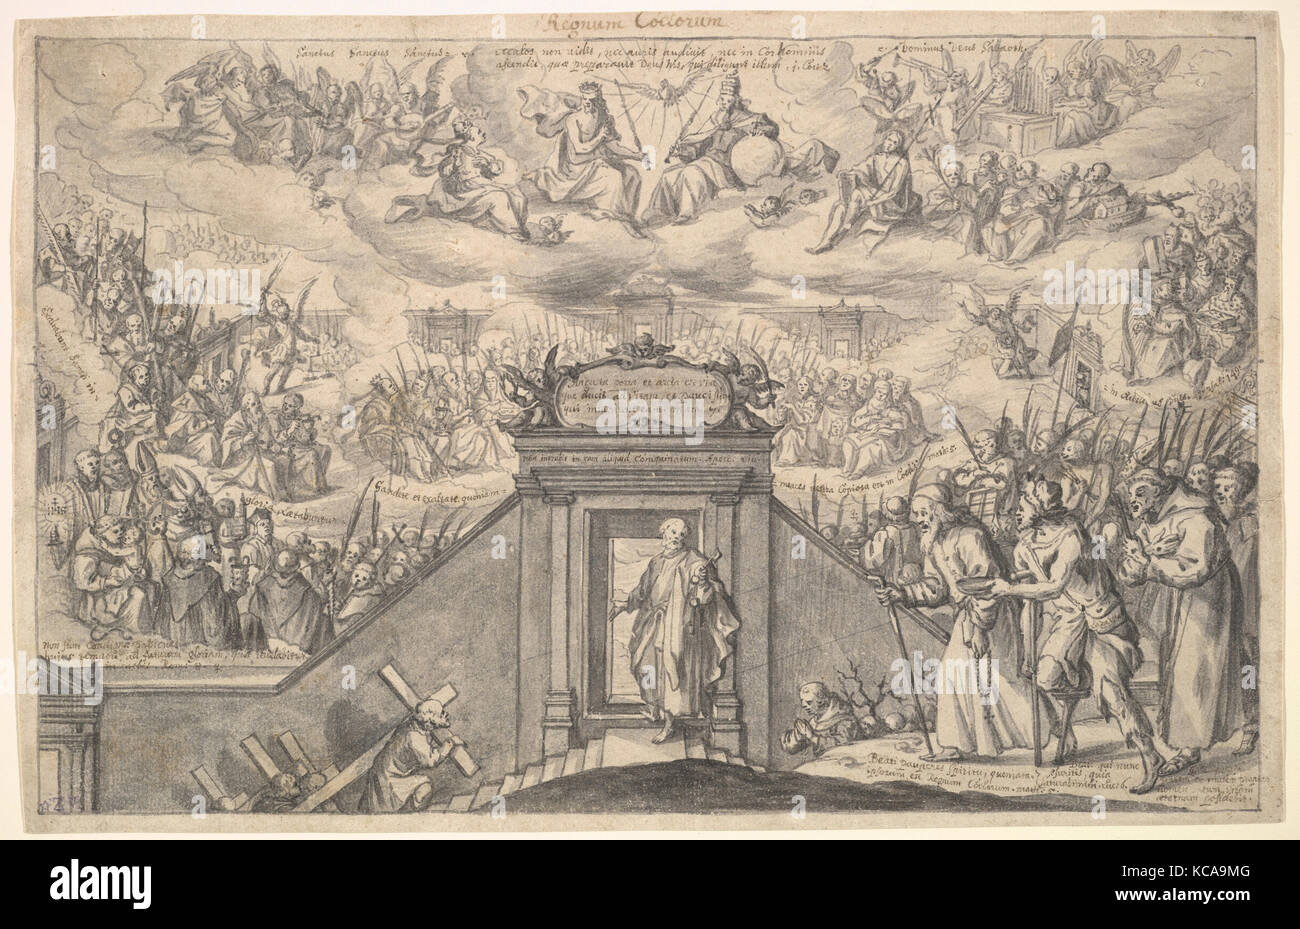 The Reign of Heavens, Anonymous, German, 17th century, late 17th century - Stock Image